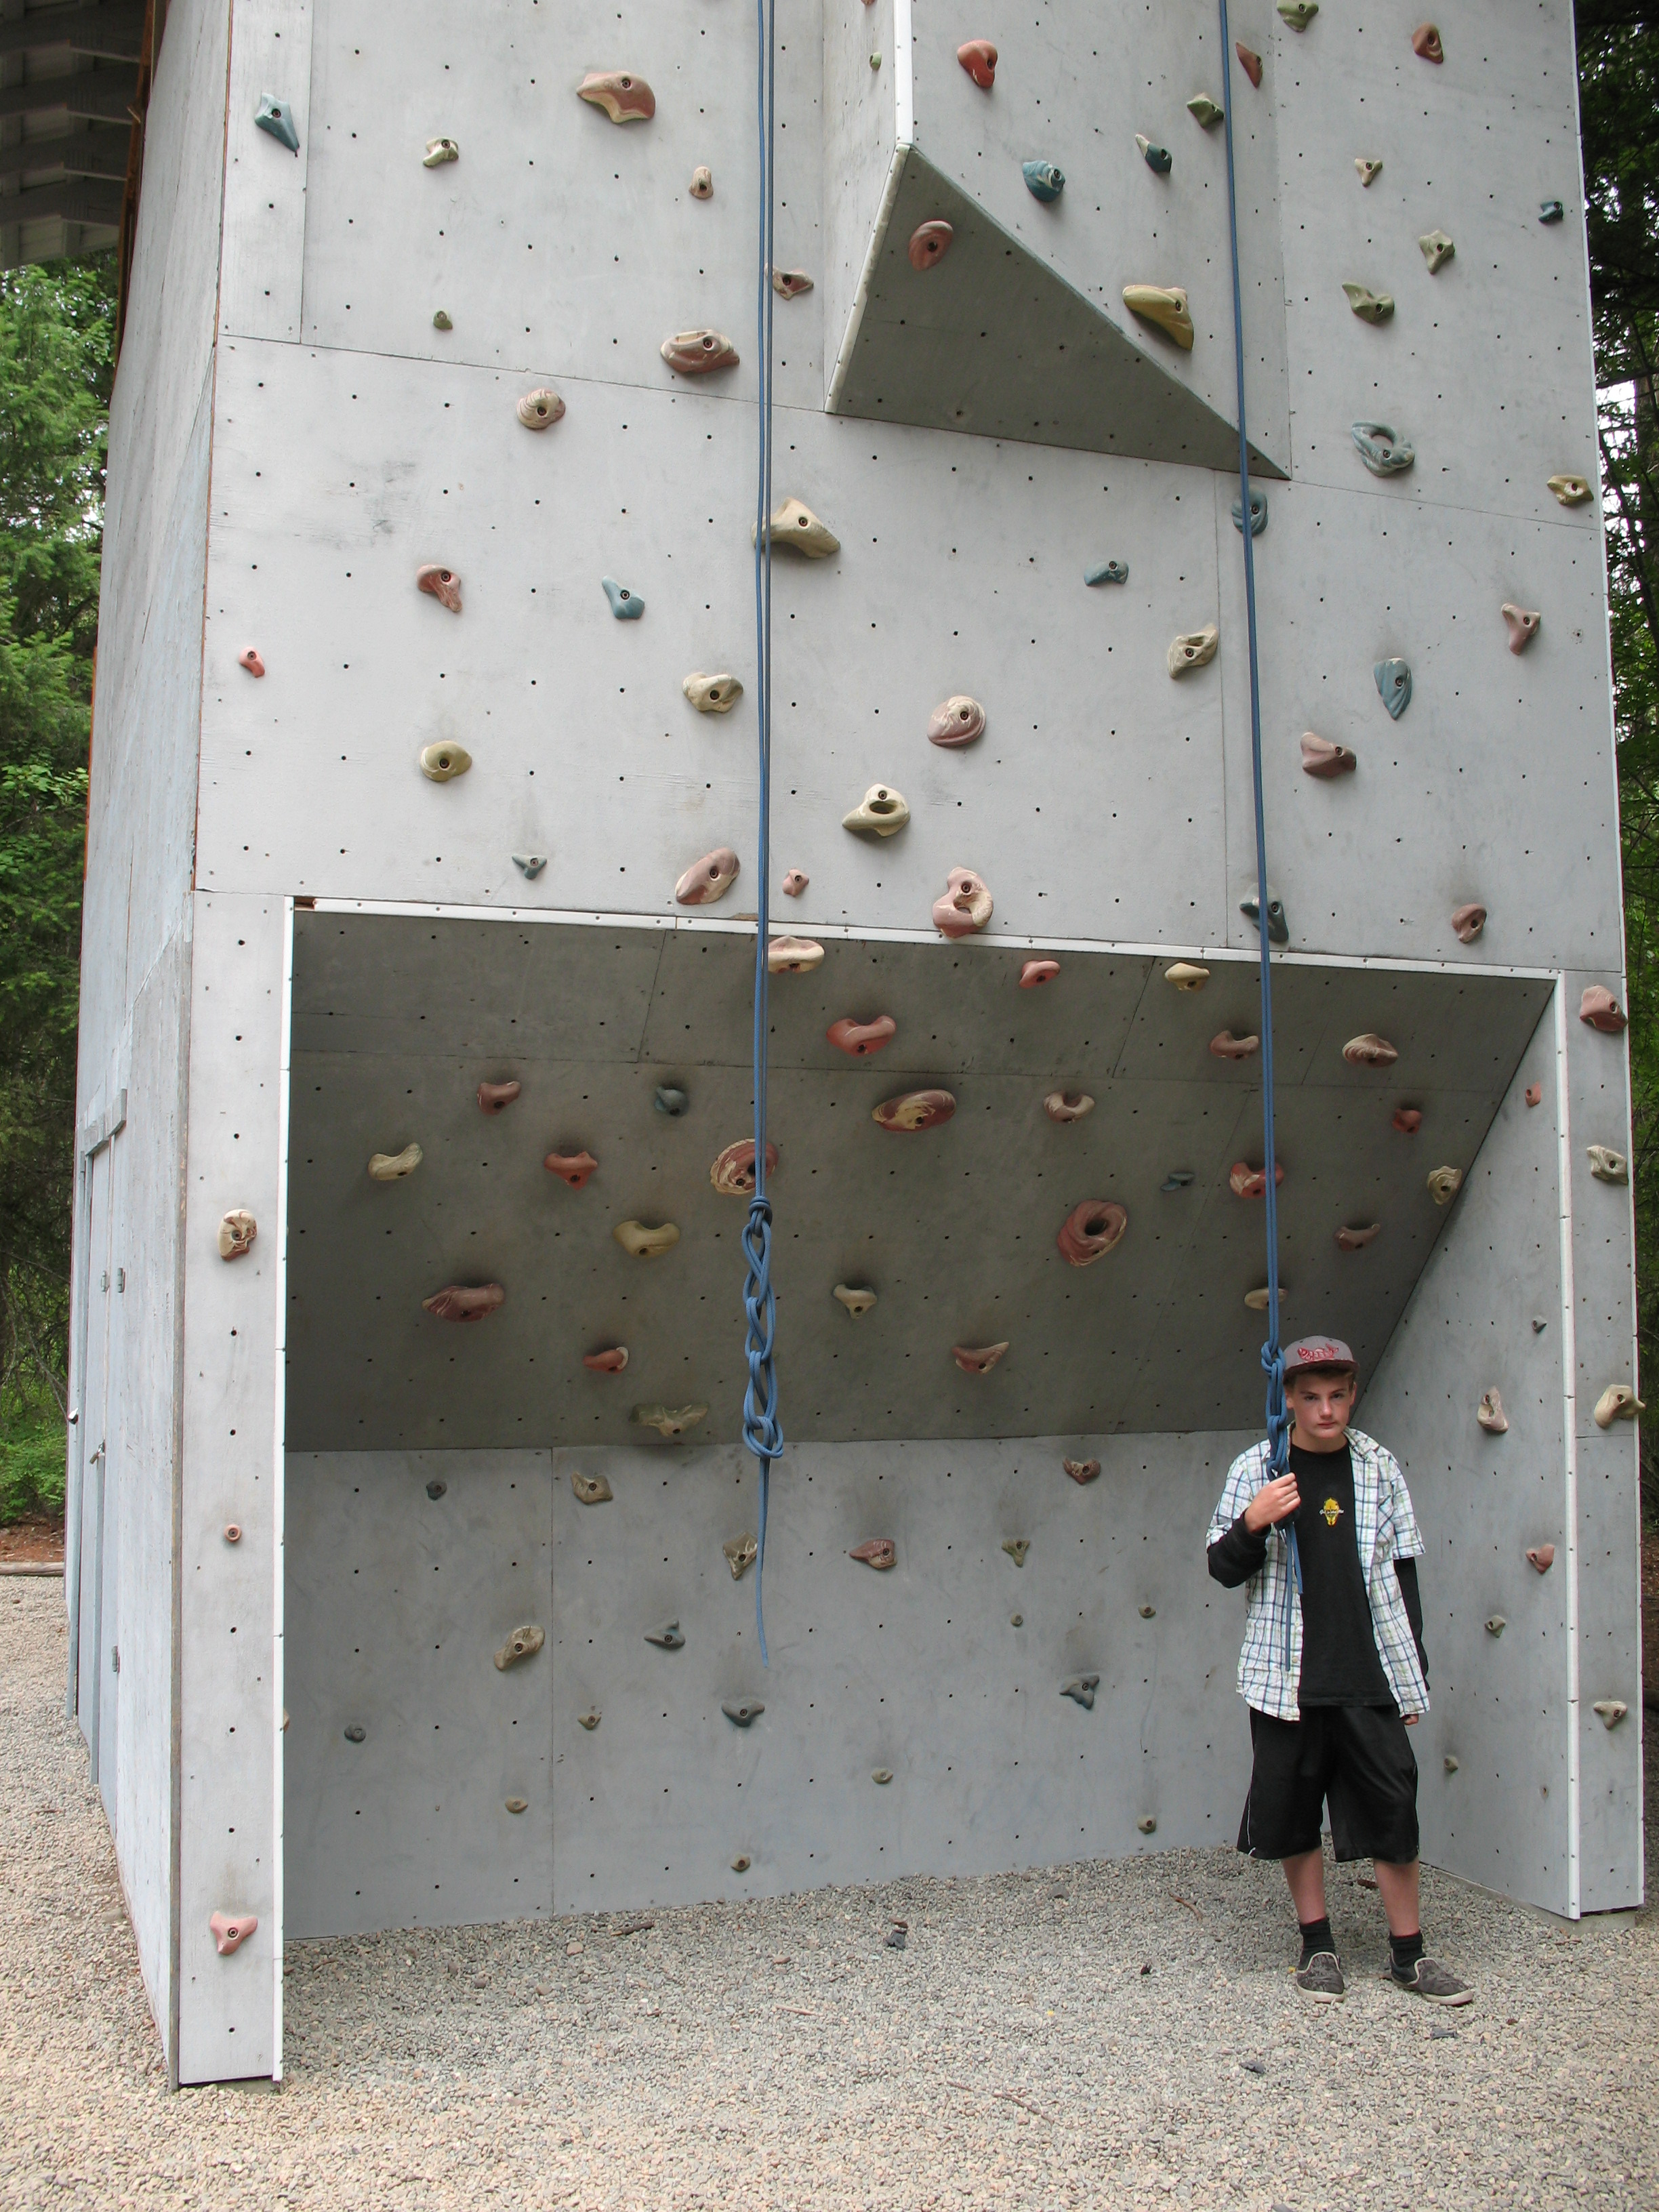 Royal at the climbing wall